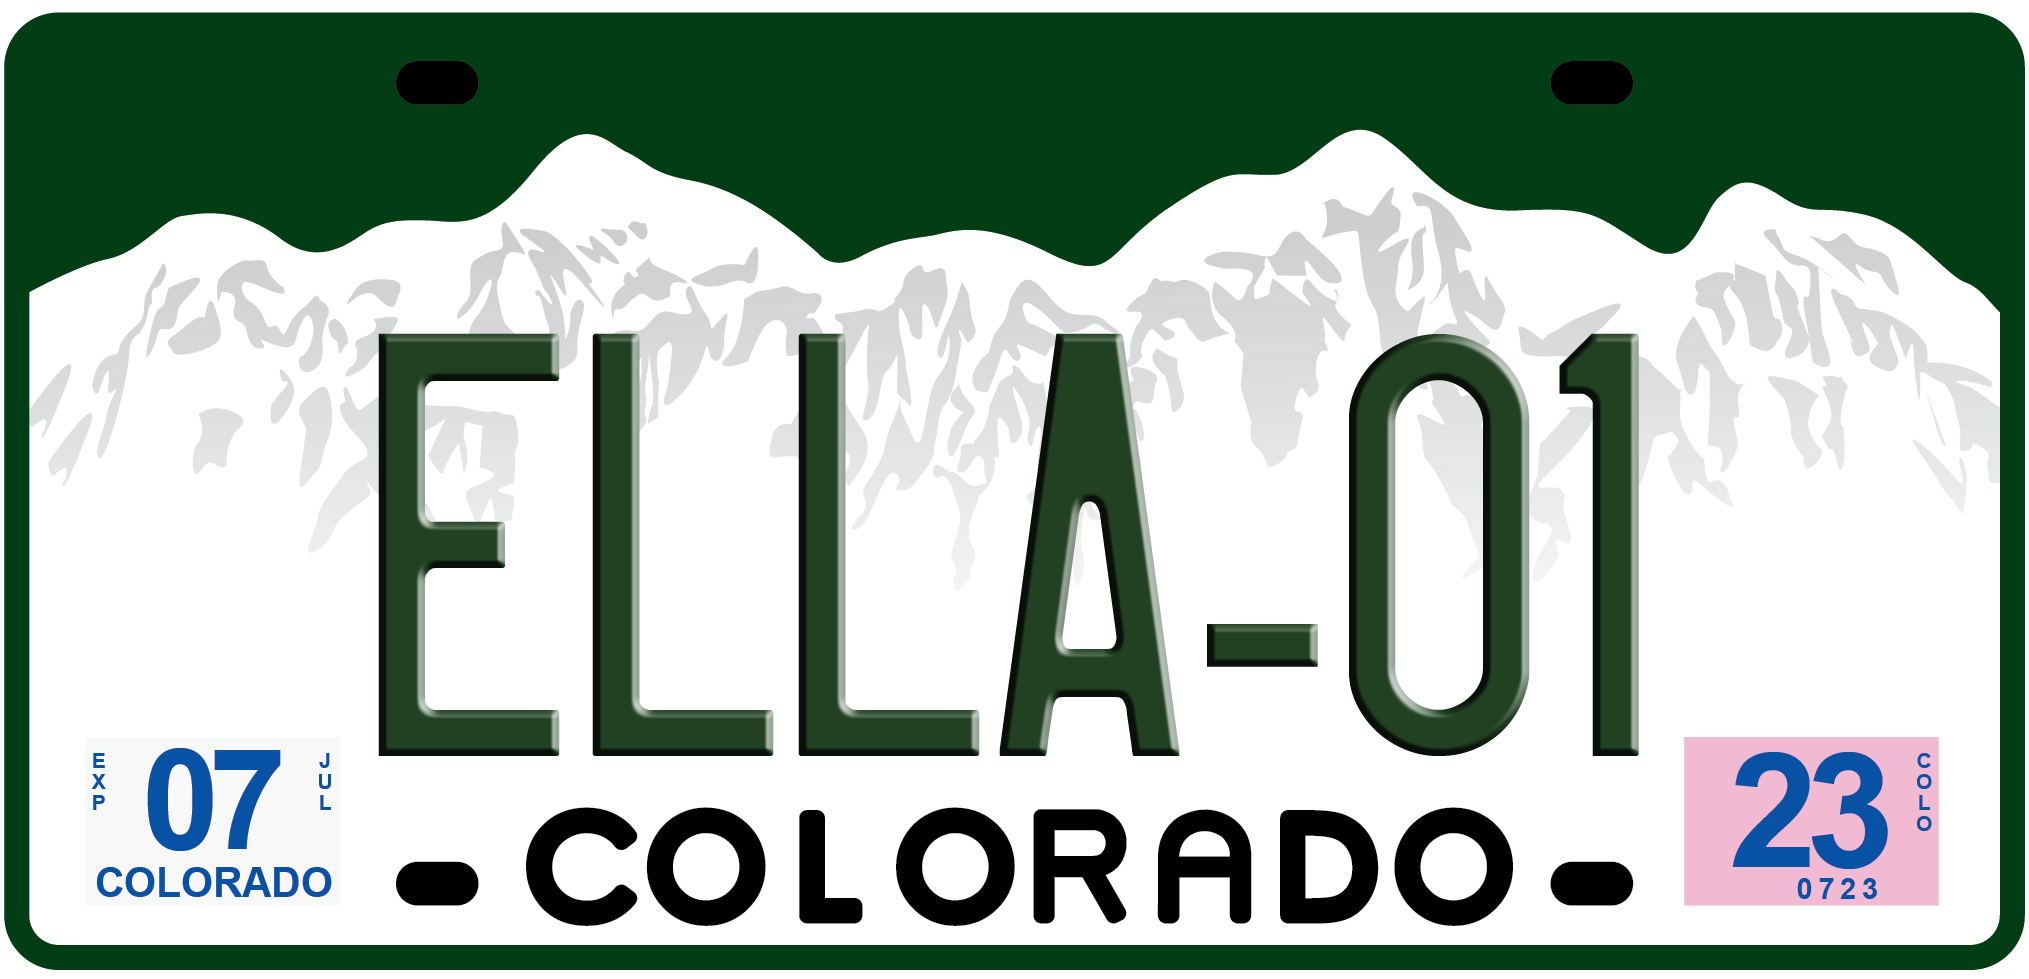 Colorado License Plate Vector at GetDrawings com | Free for personal